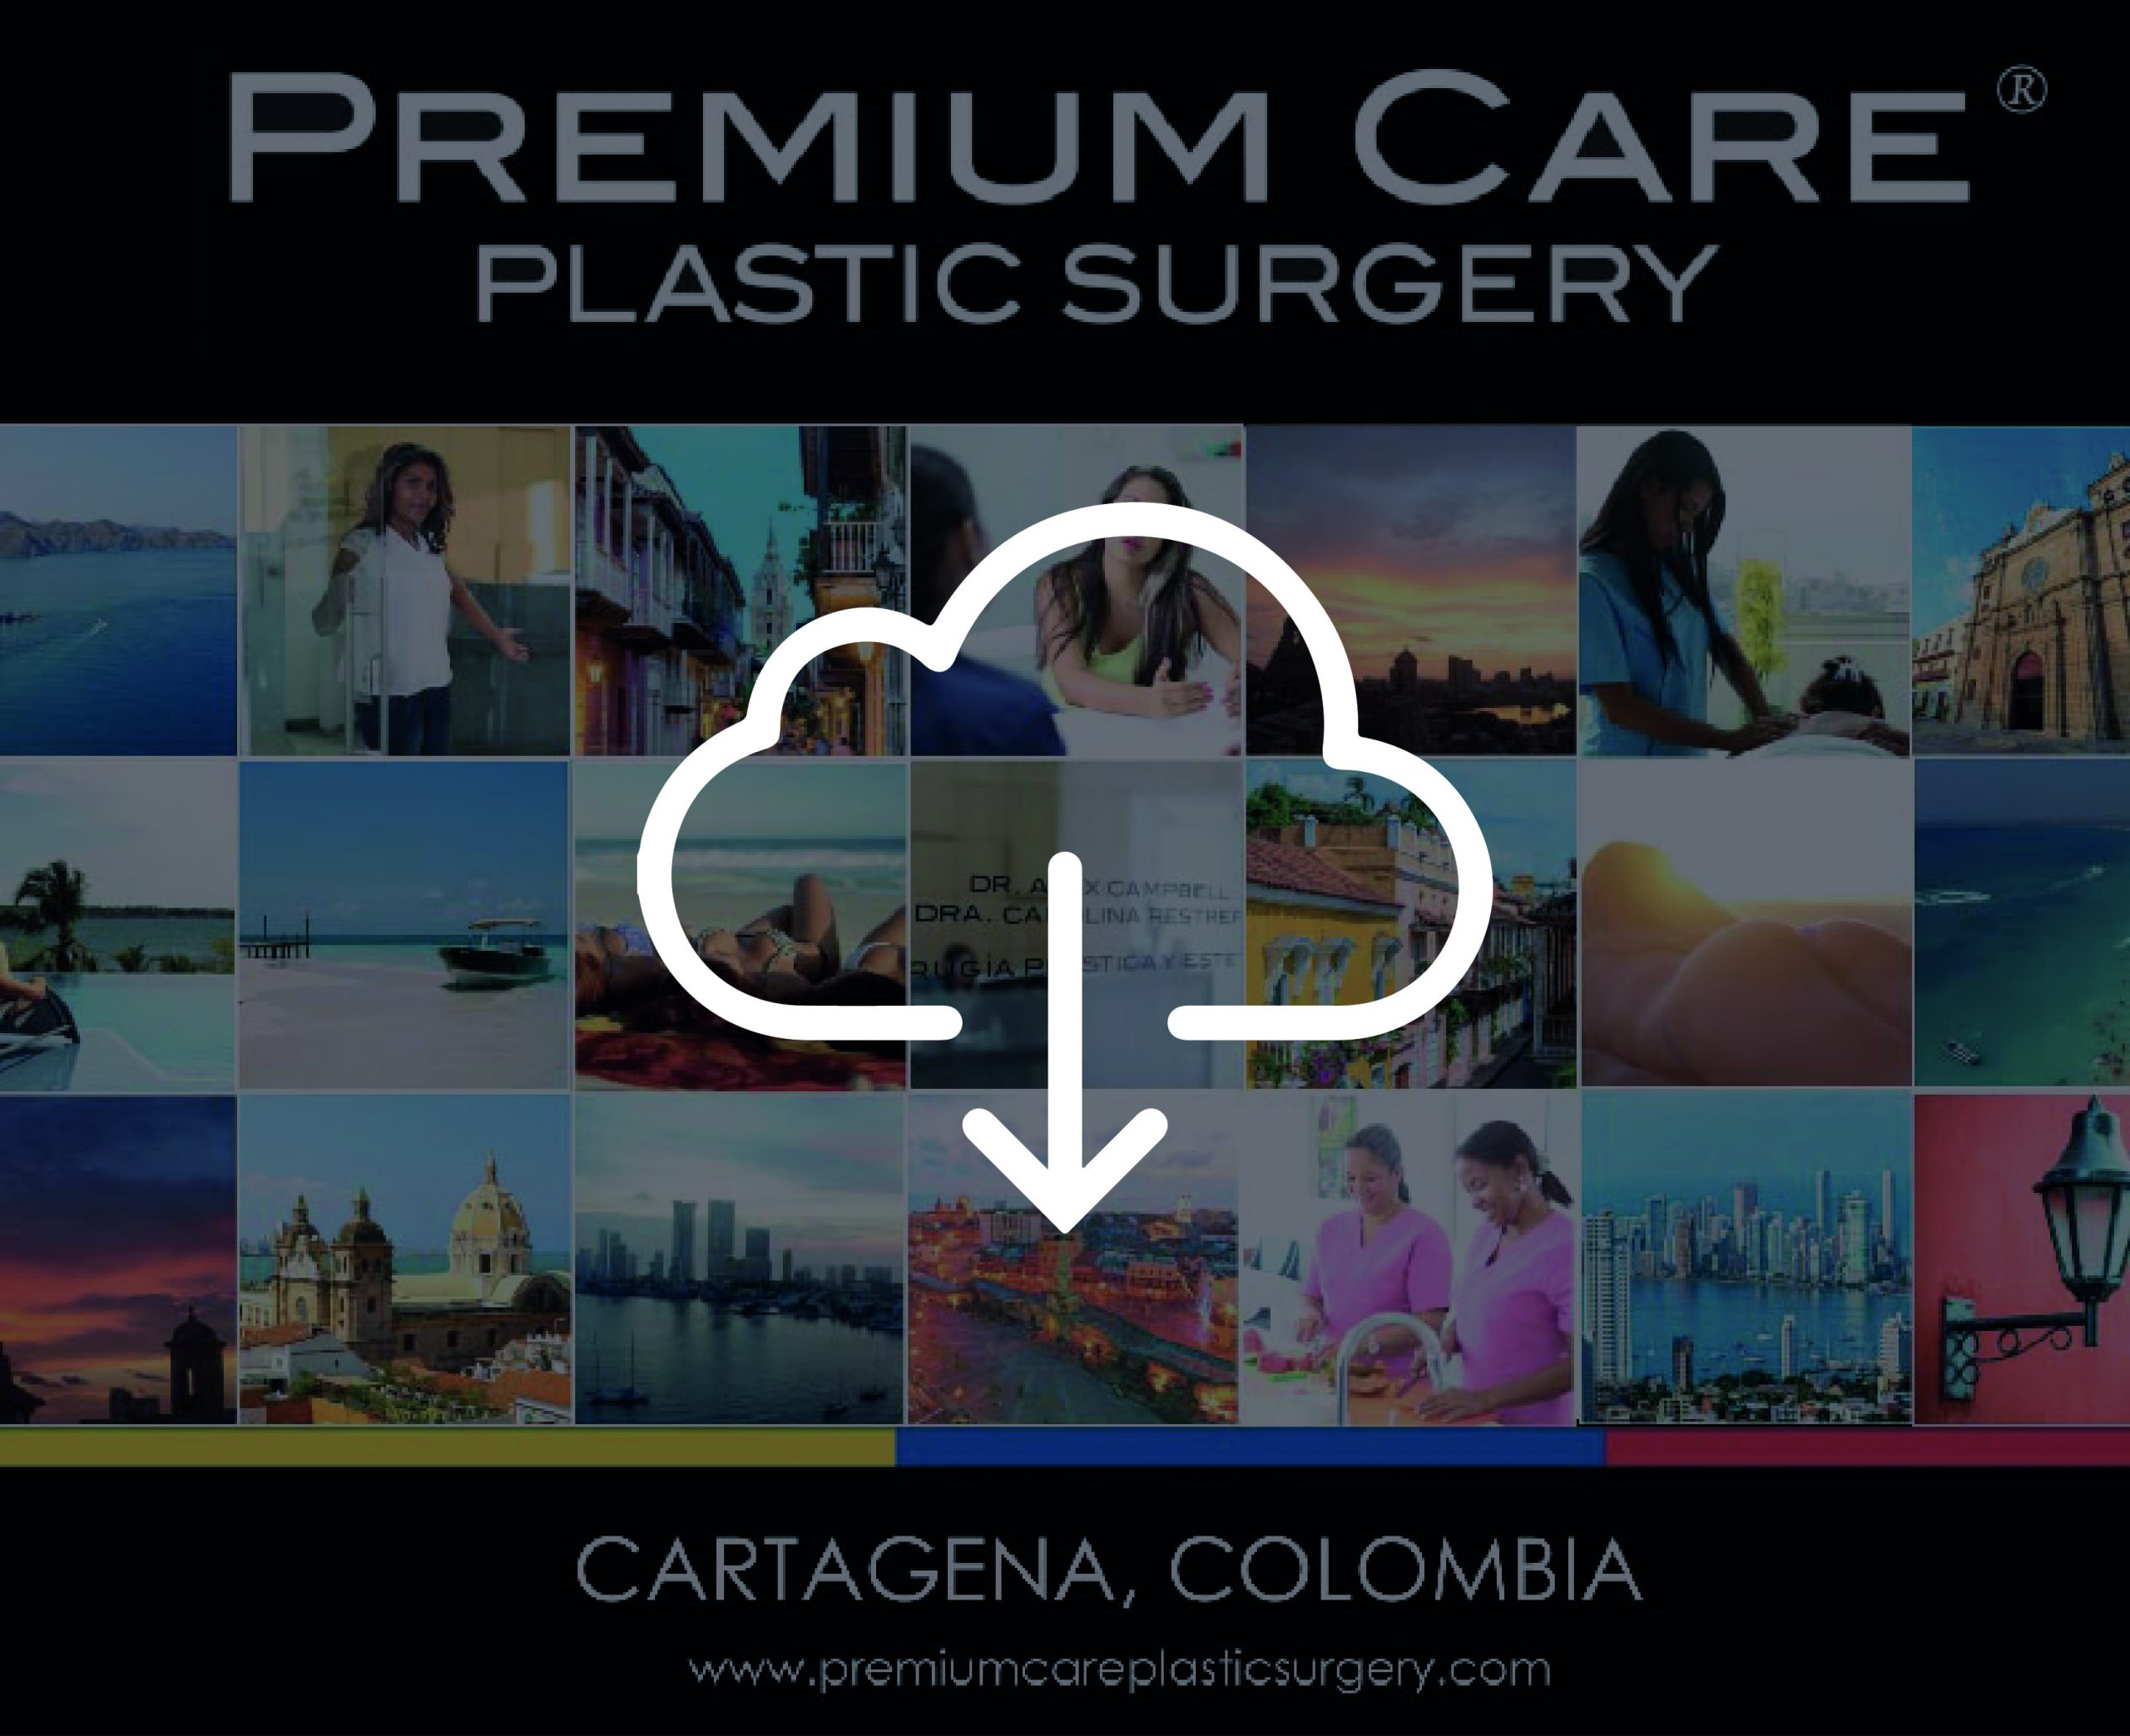 Download iBook - Premium Care- Plastic Surgery Colombia